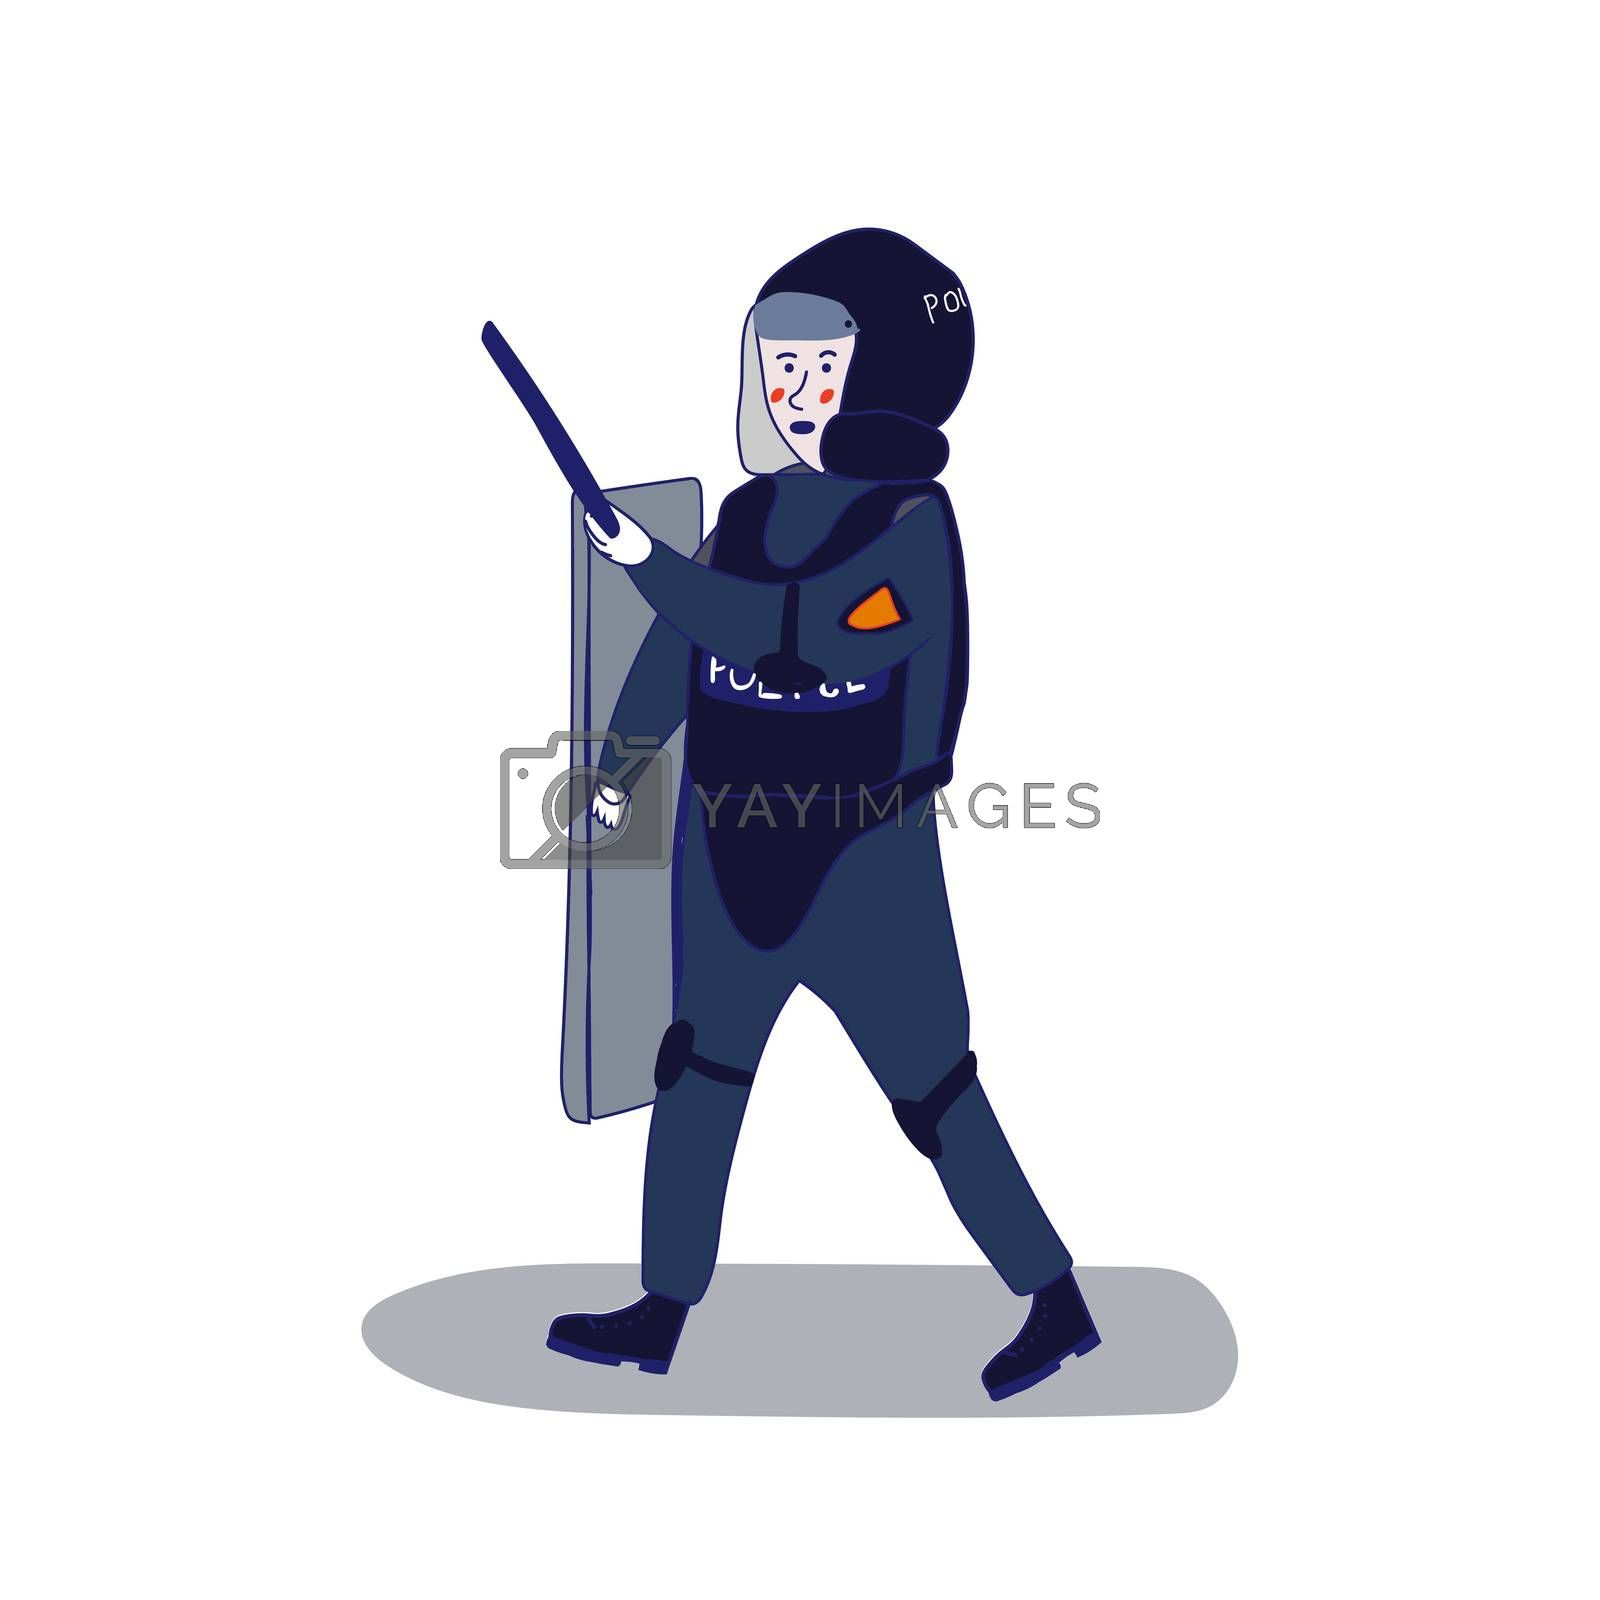 Uniformed police officer standing with a shield and a baton on a white background in cartoon style. illustration with a blue line